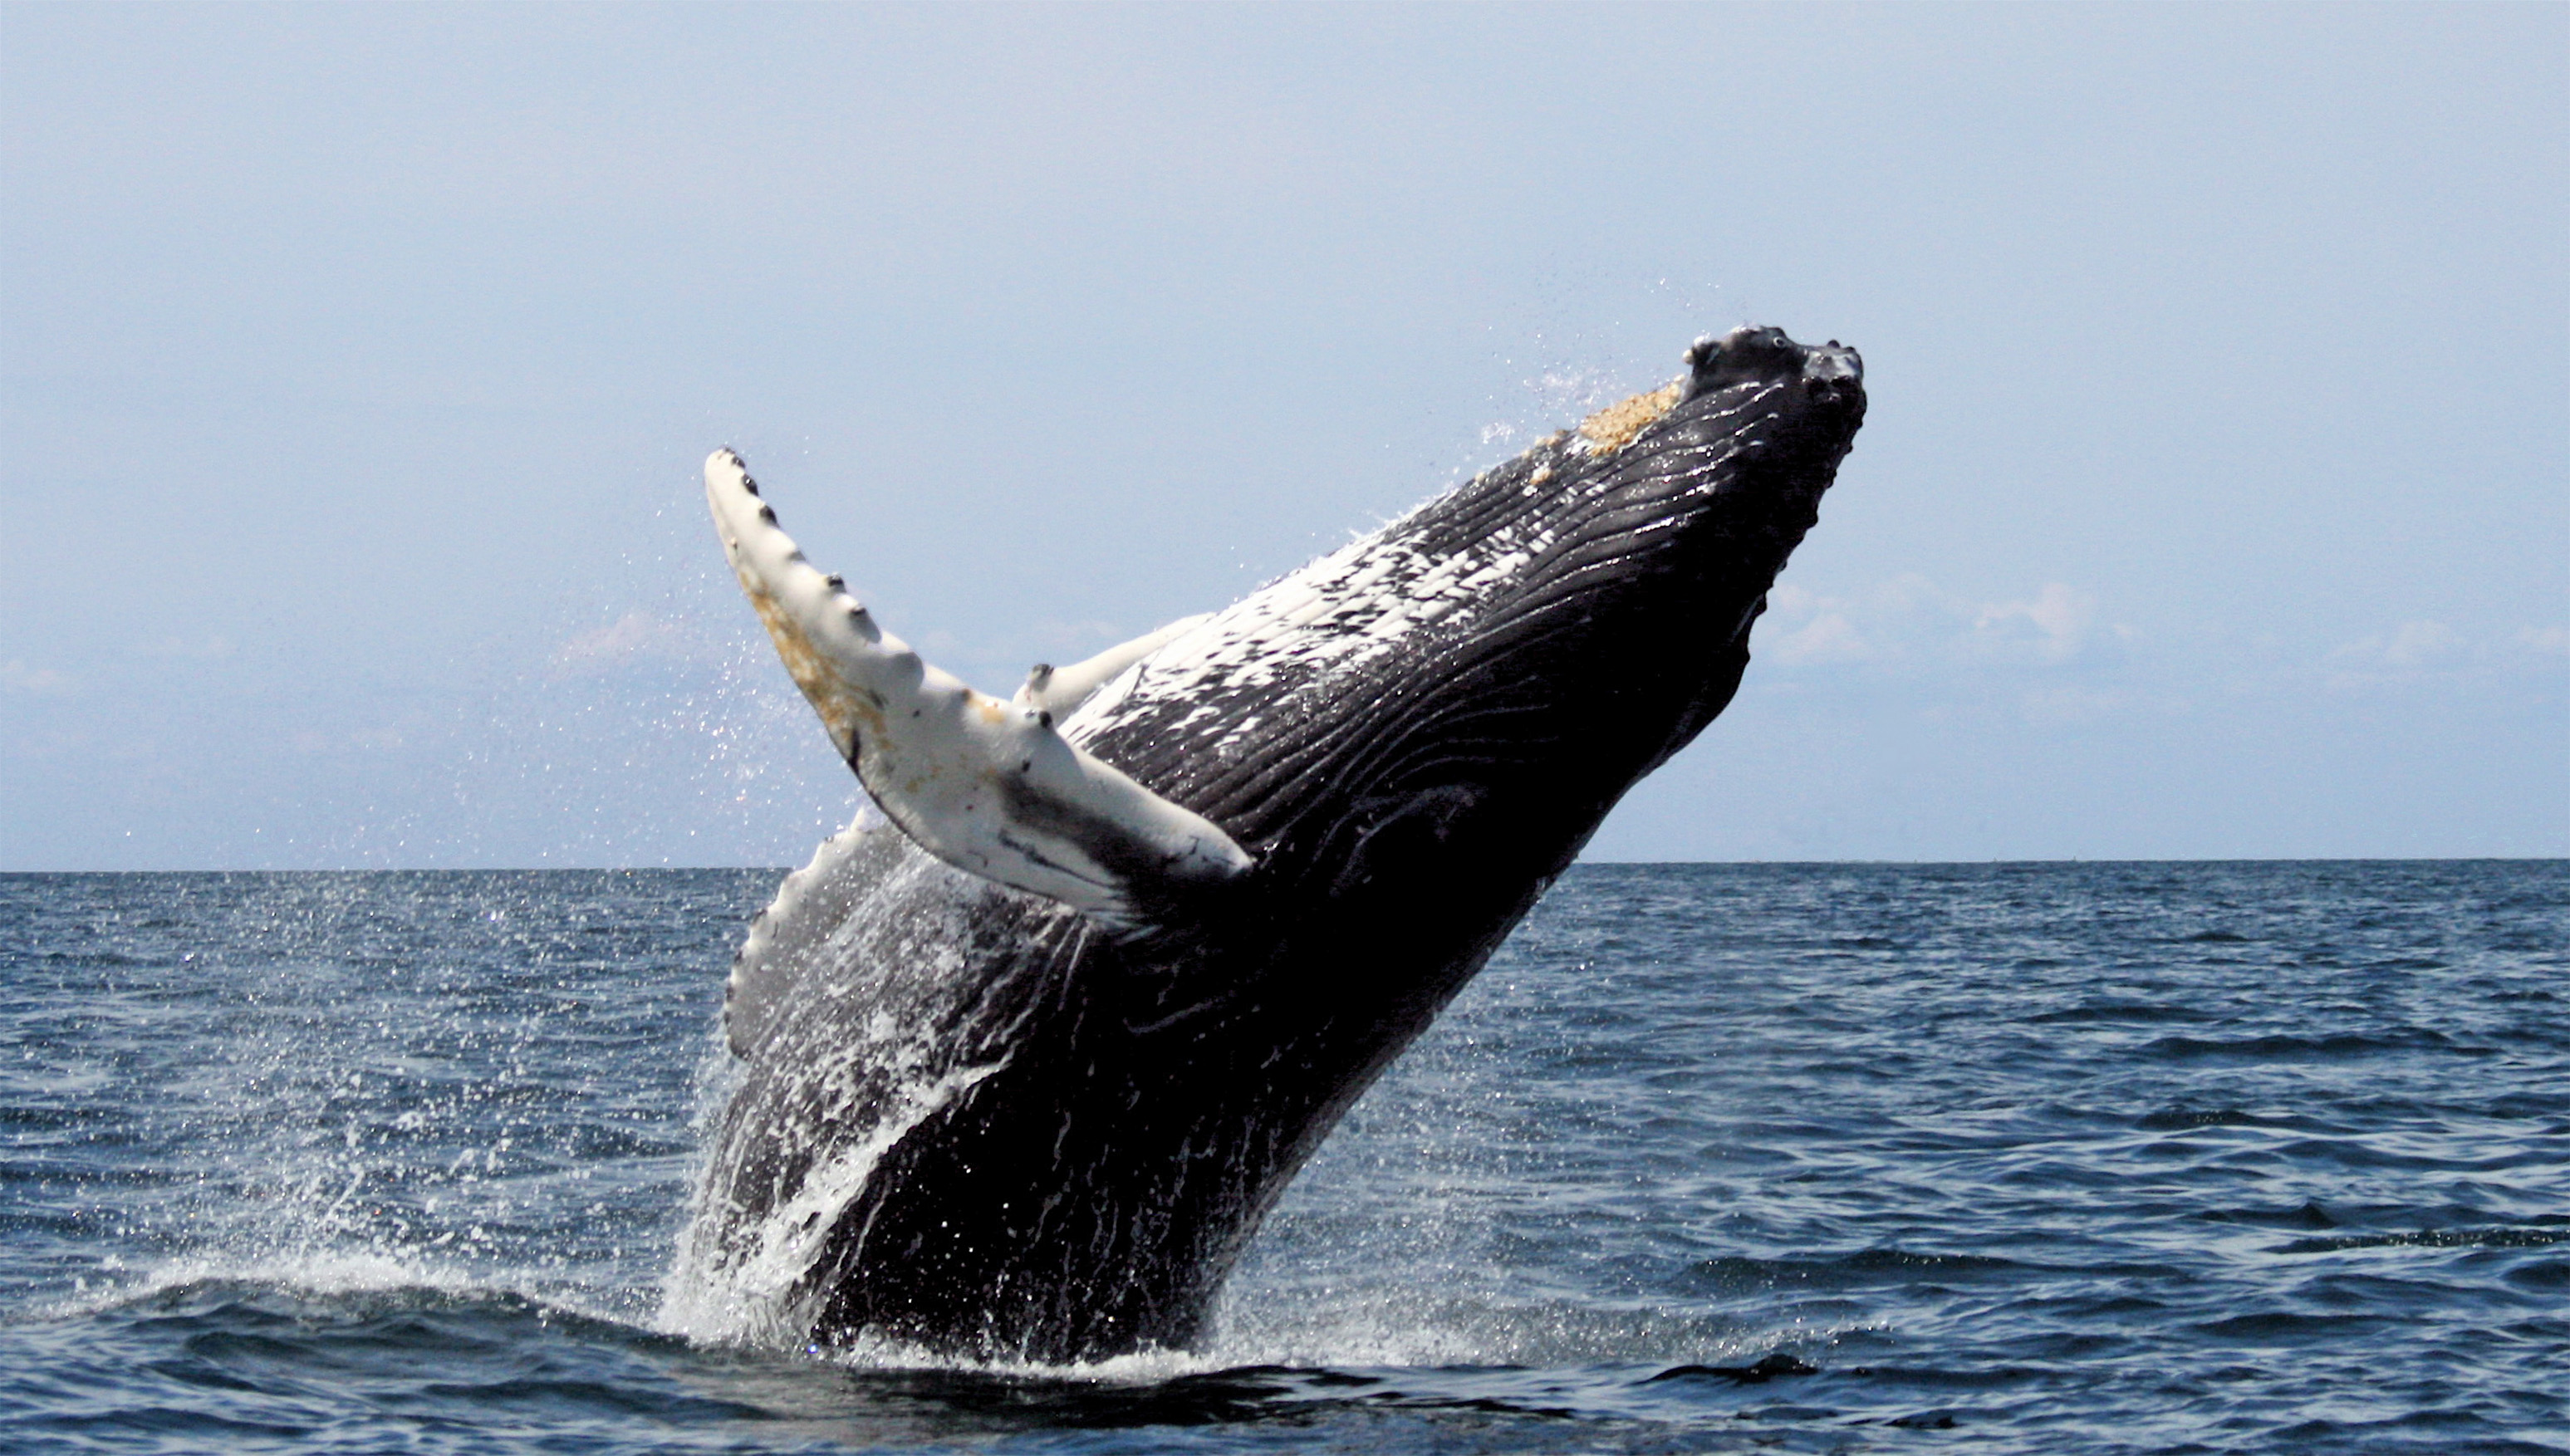 761dbebaed96 Cetacean surfacing behaviour - Wikipedia